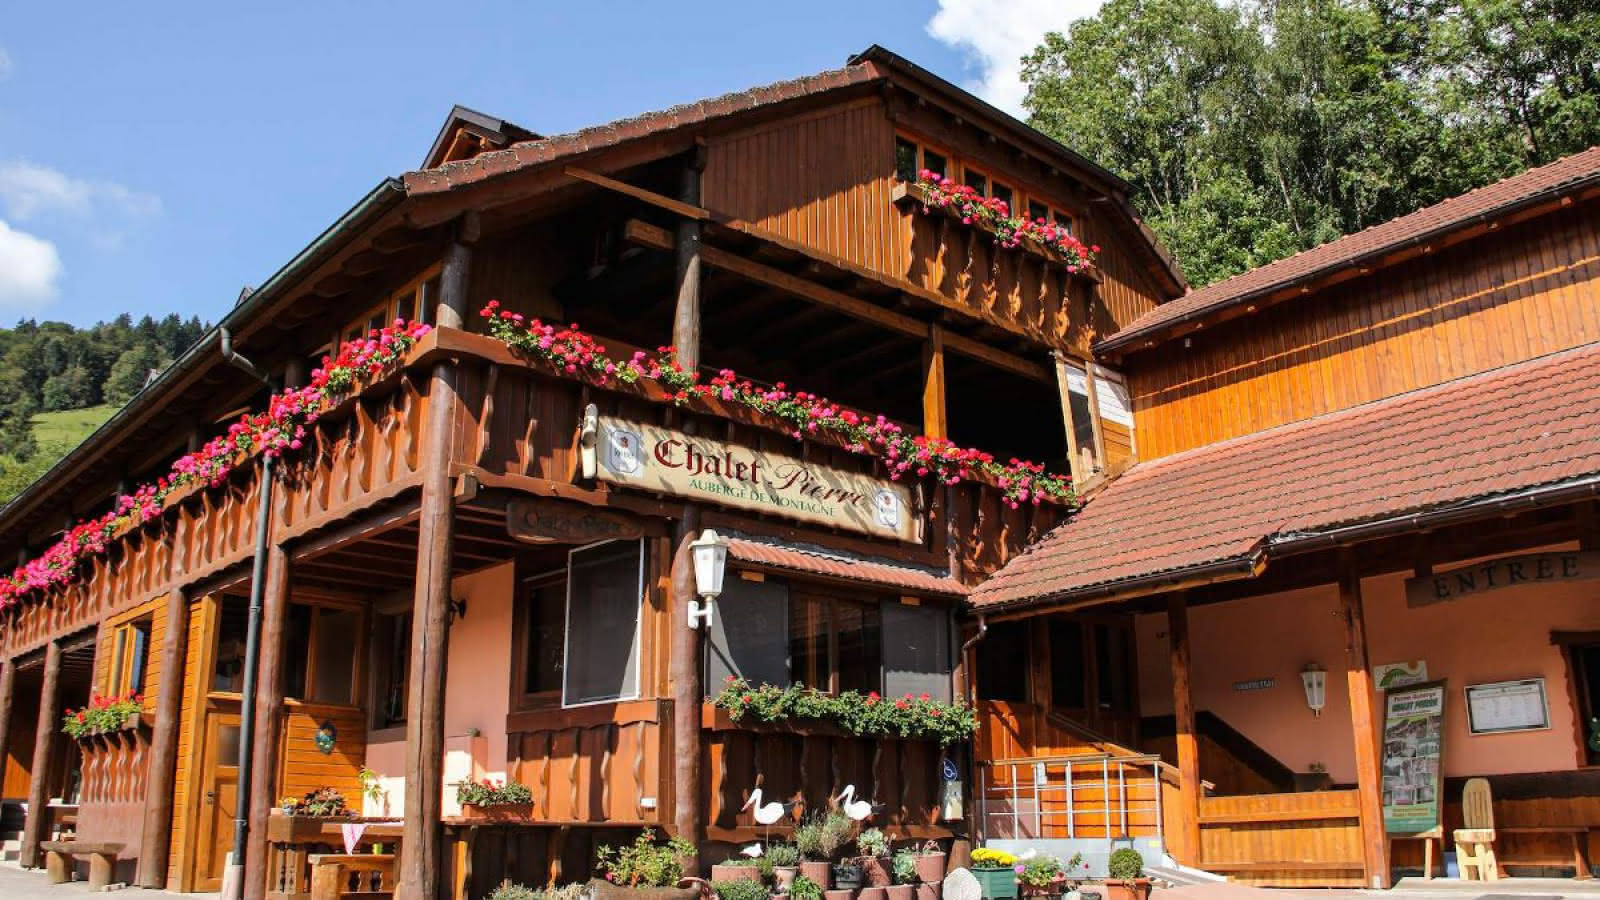 Chambres d 39 h tes chalet pierre visit alsace - Chambre d hote ribeauville ...